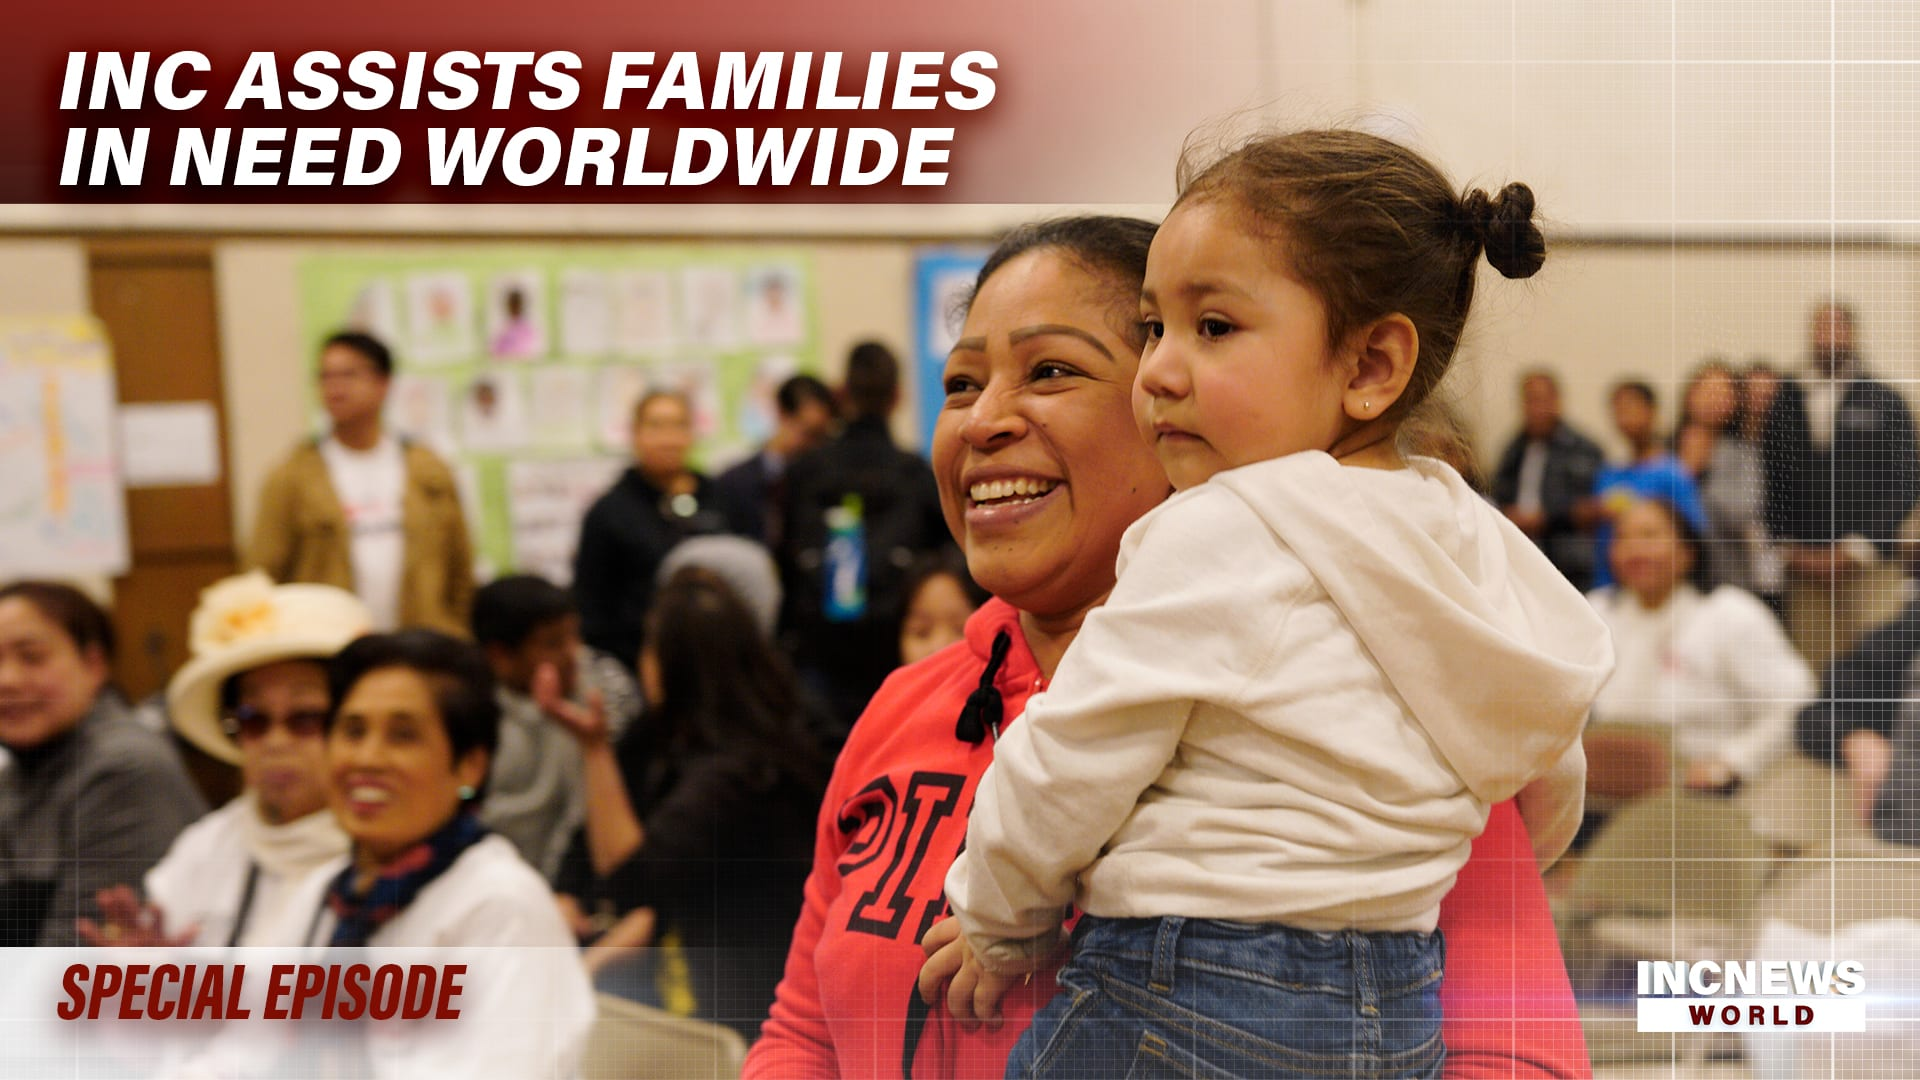 INC Assists Families in Need Worldwide